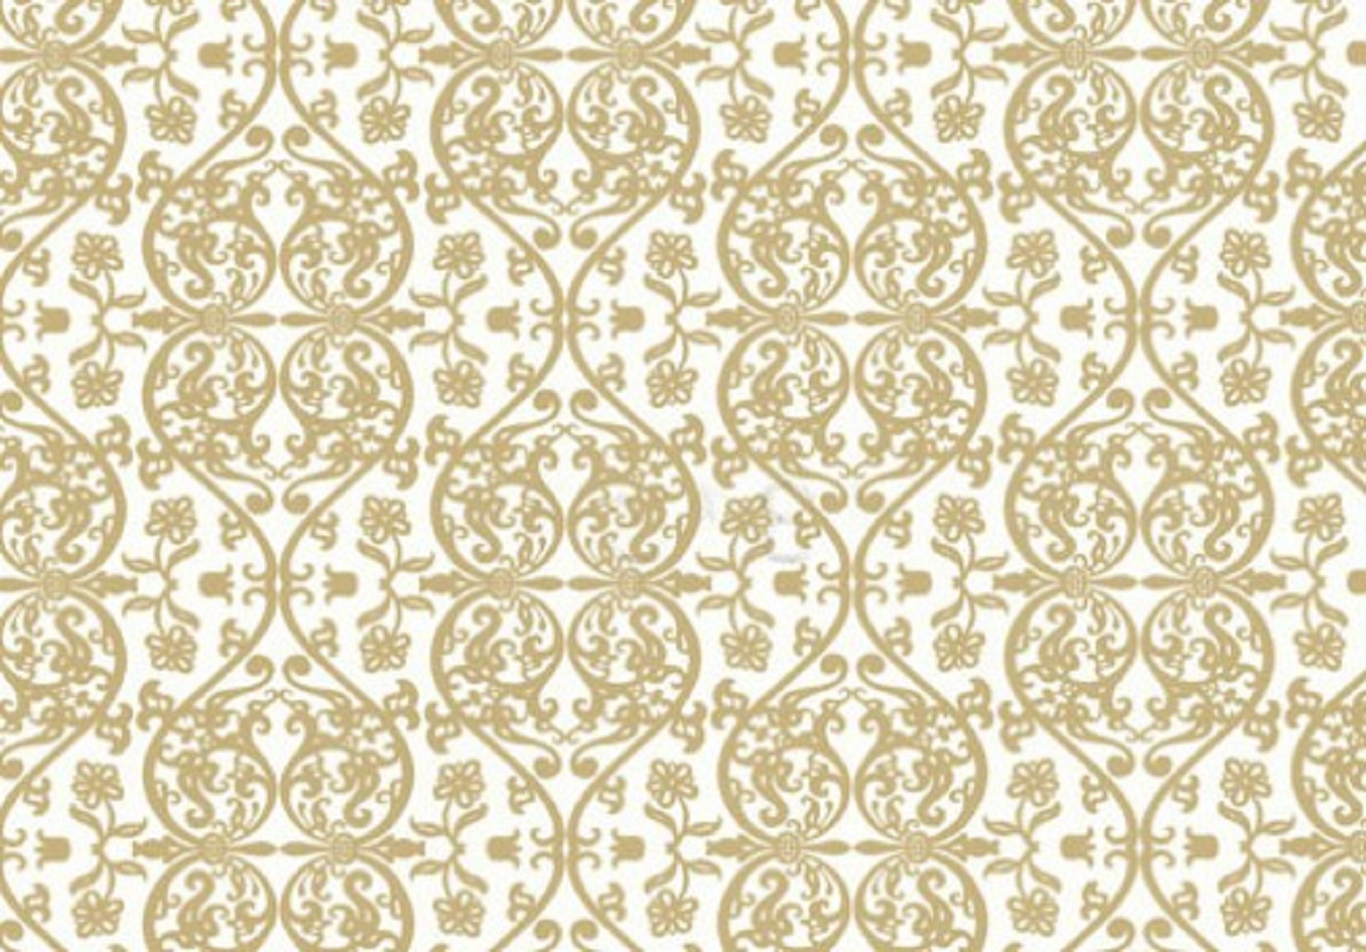 Black White Gold Background White Gold Background Png 1366x952